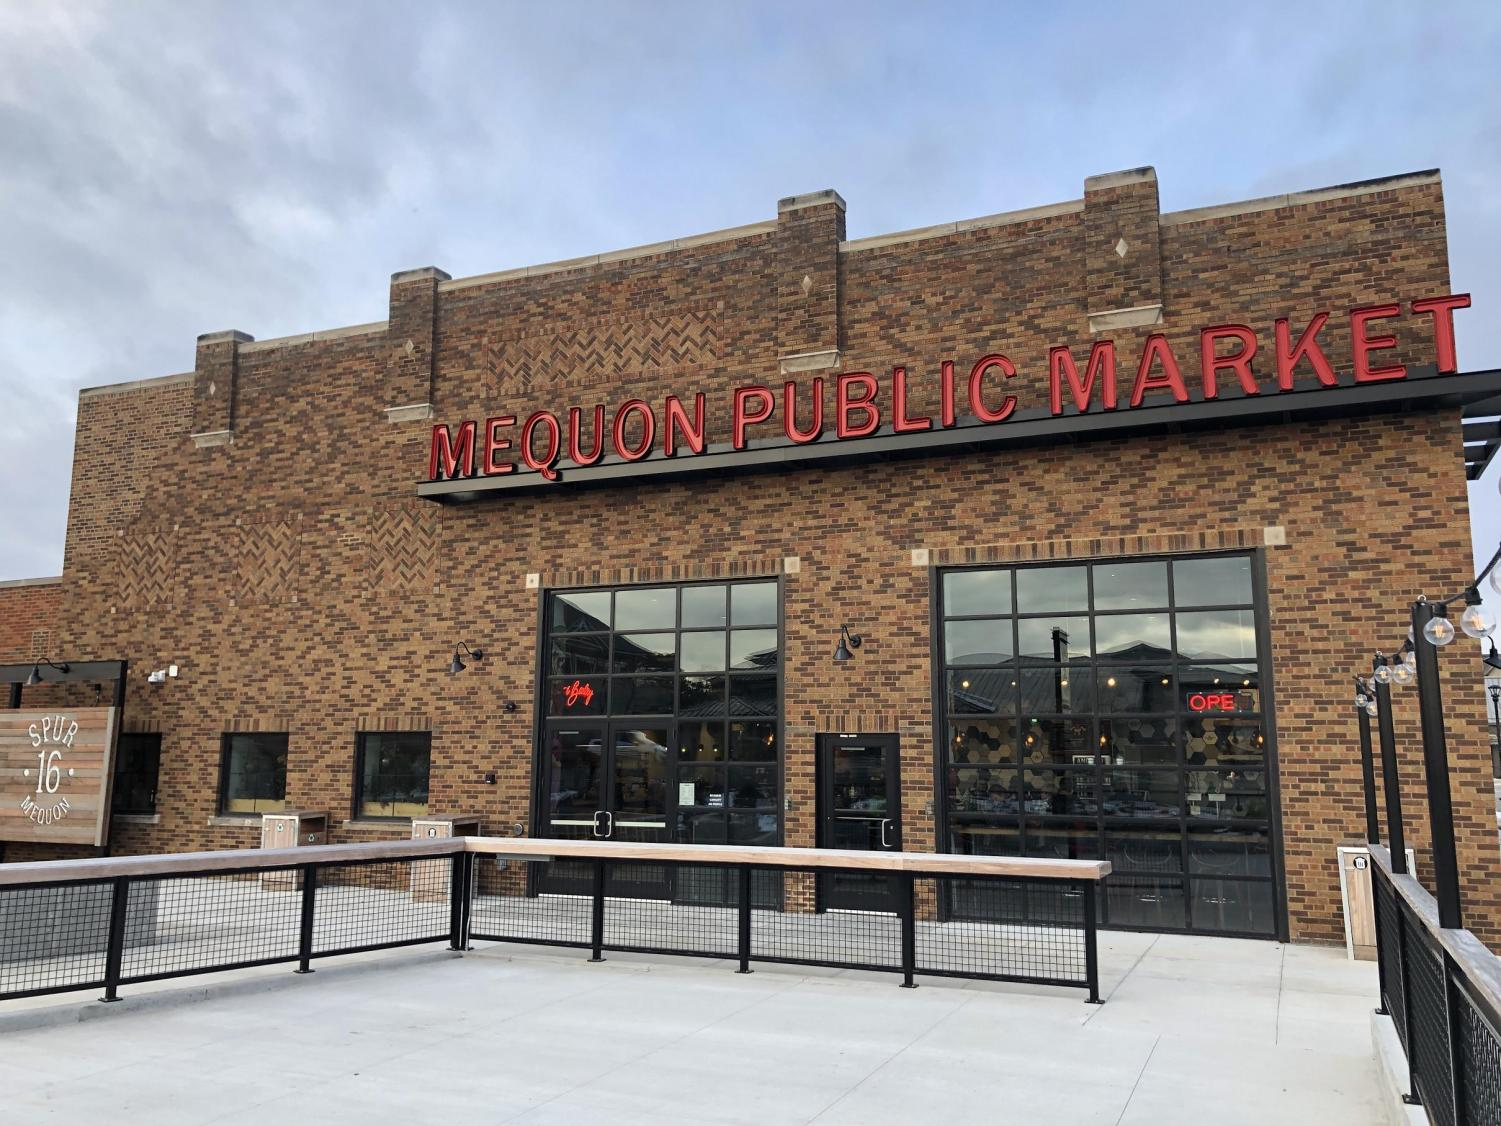 The Mequon Public Market at Spur 16 has been open since late June 2019.